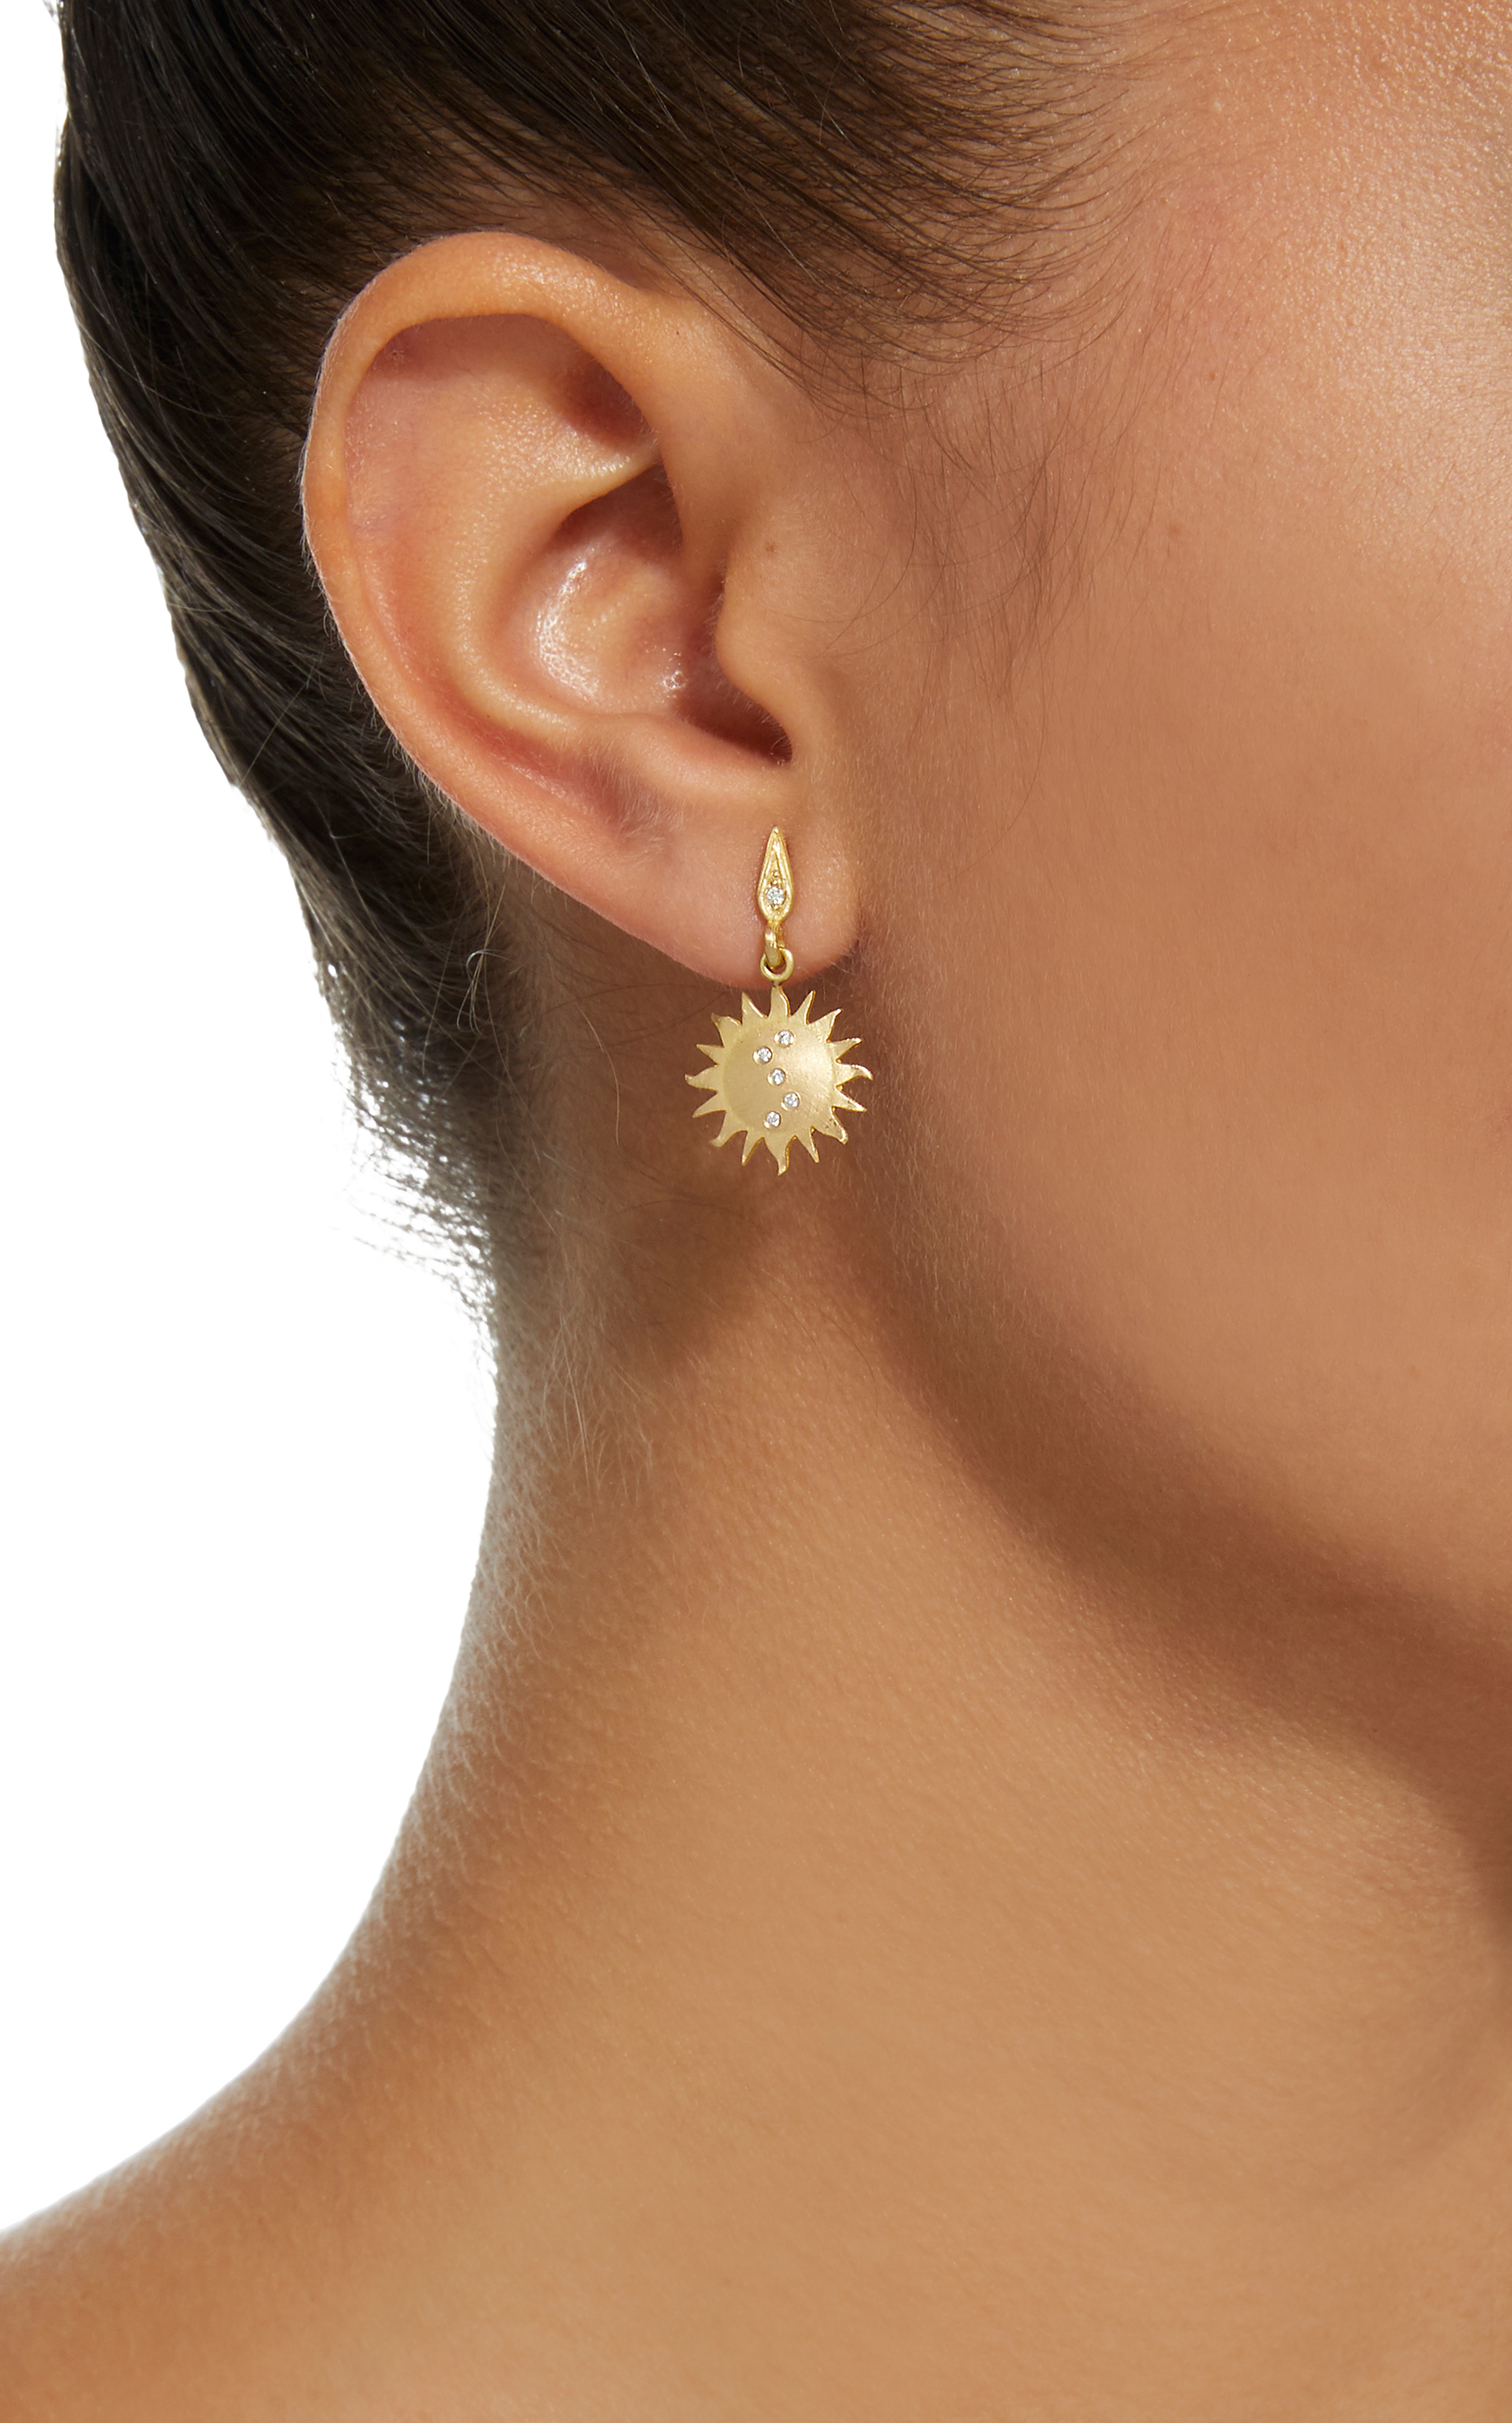 gold operandi large earring earrings kova loading by single moda jade